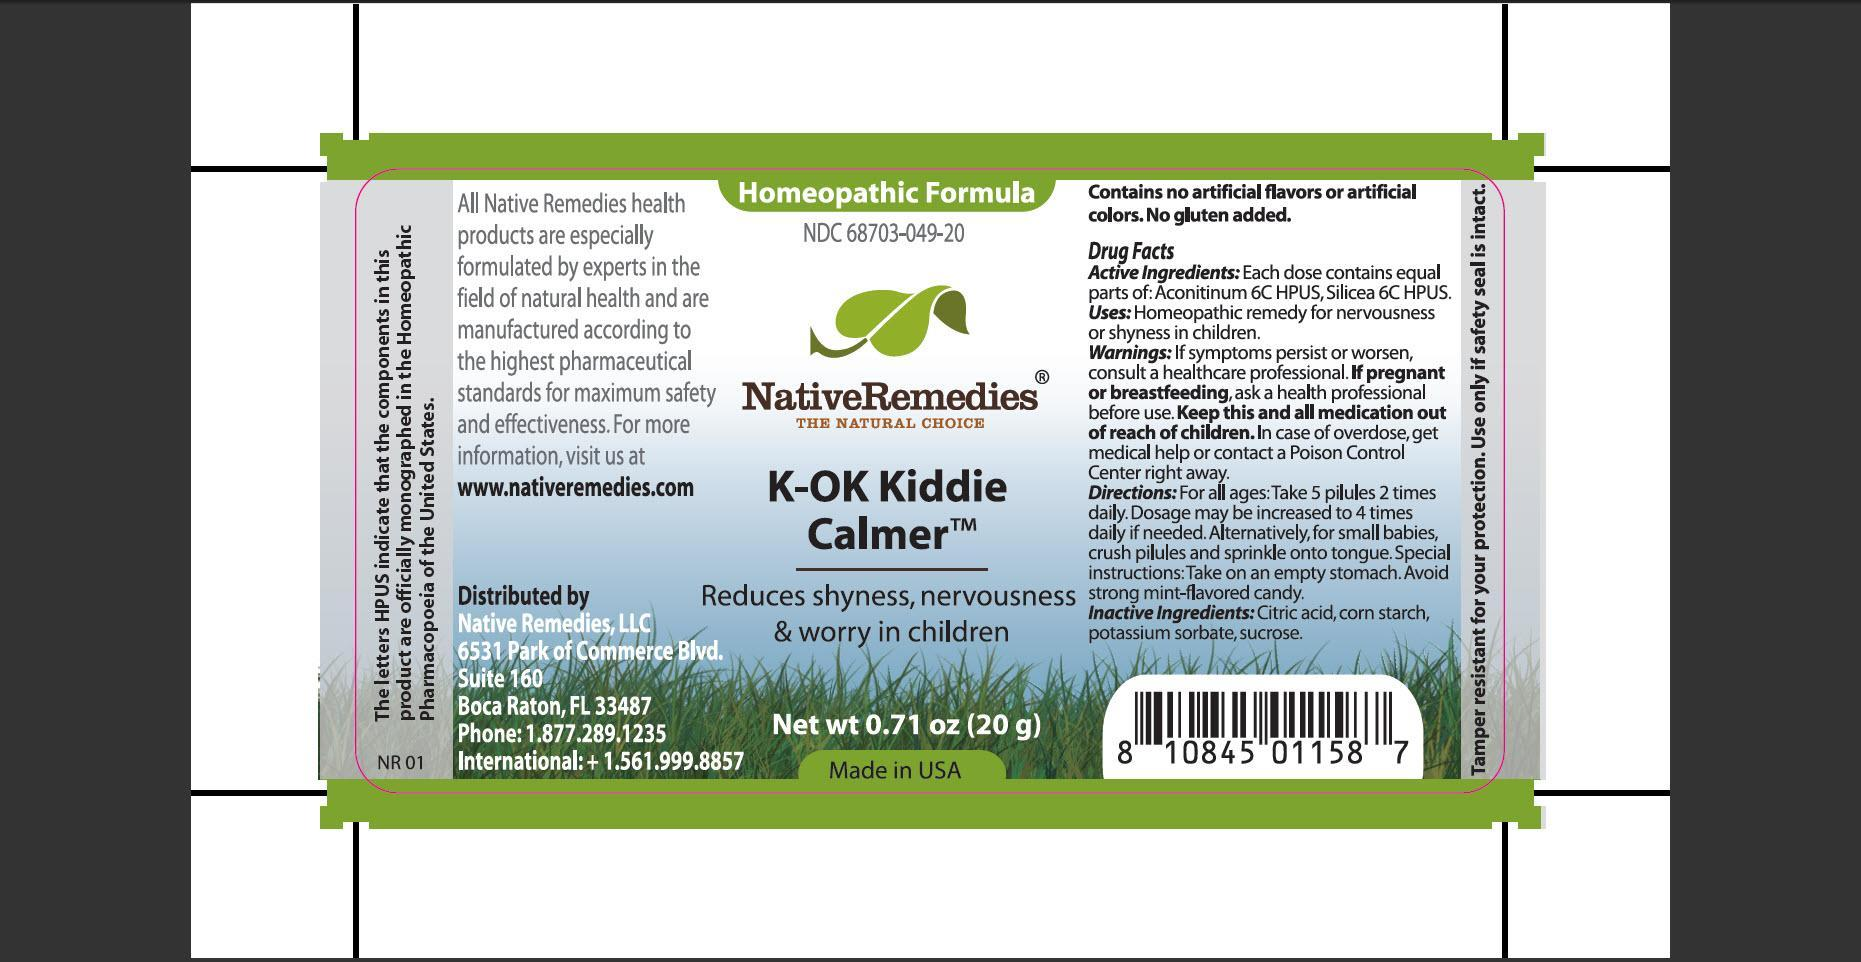 K-ok Kiddie Calmer (Aconitinum, Silicea) Granule [Native Remedies, Llc]